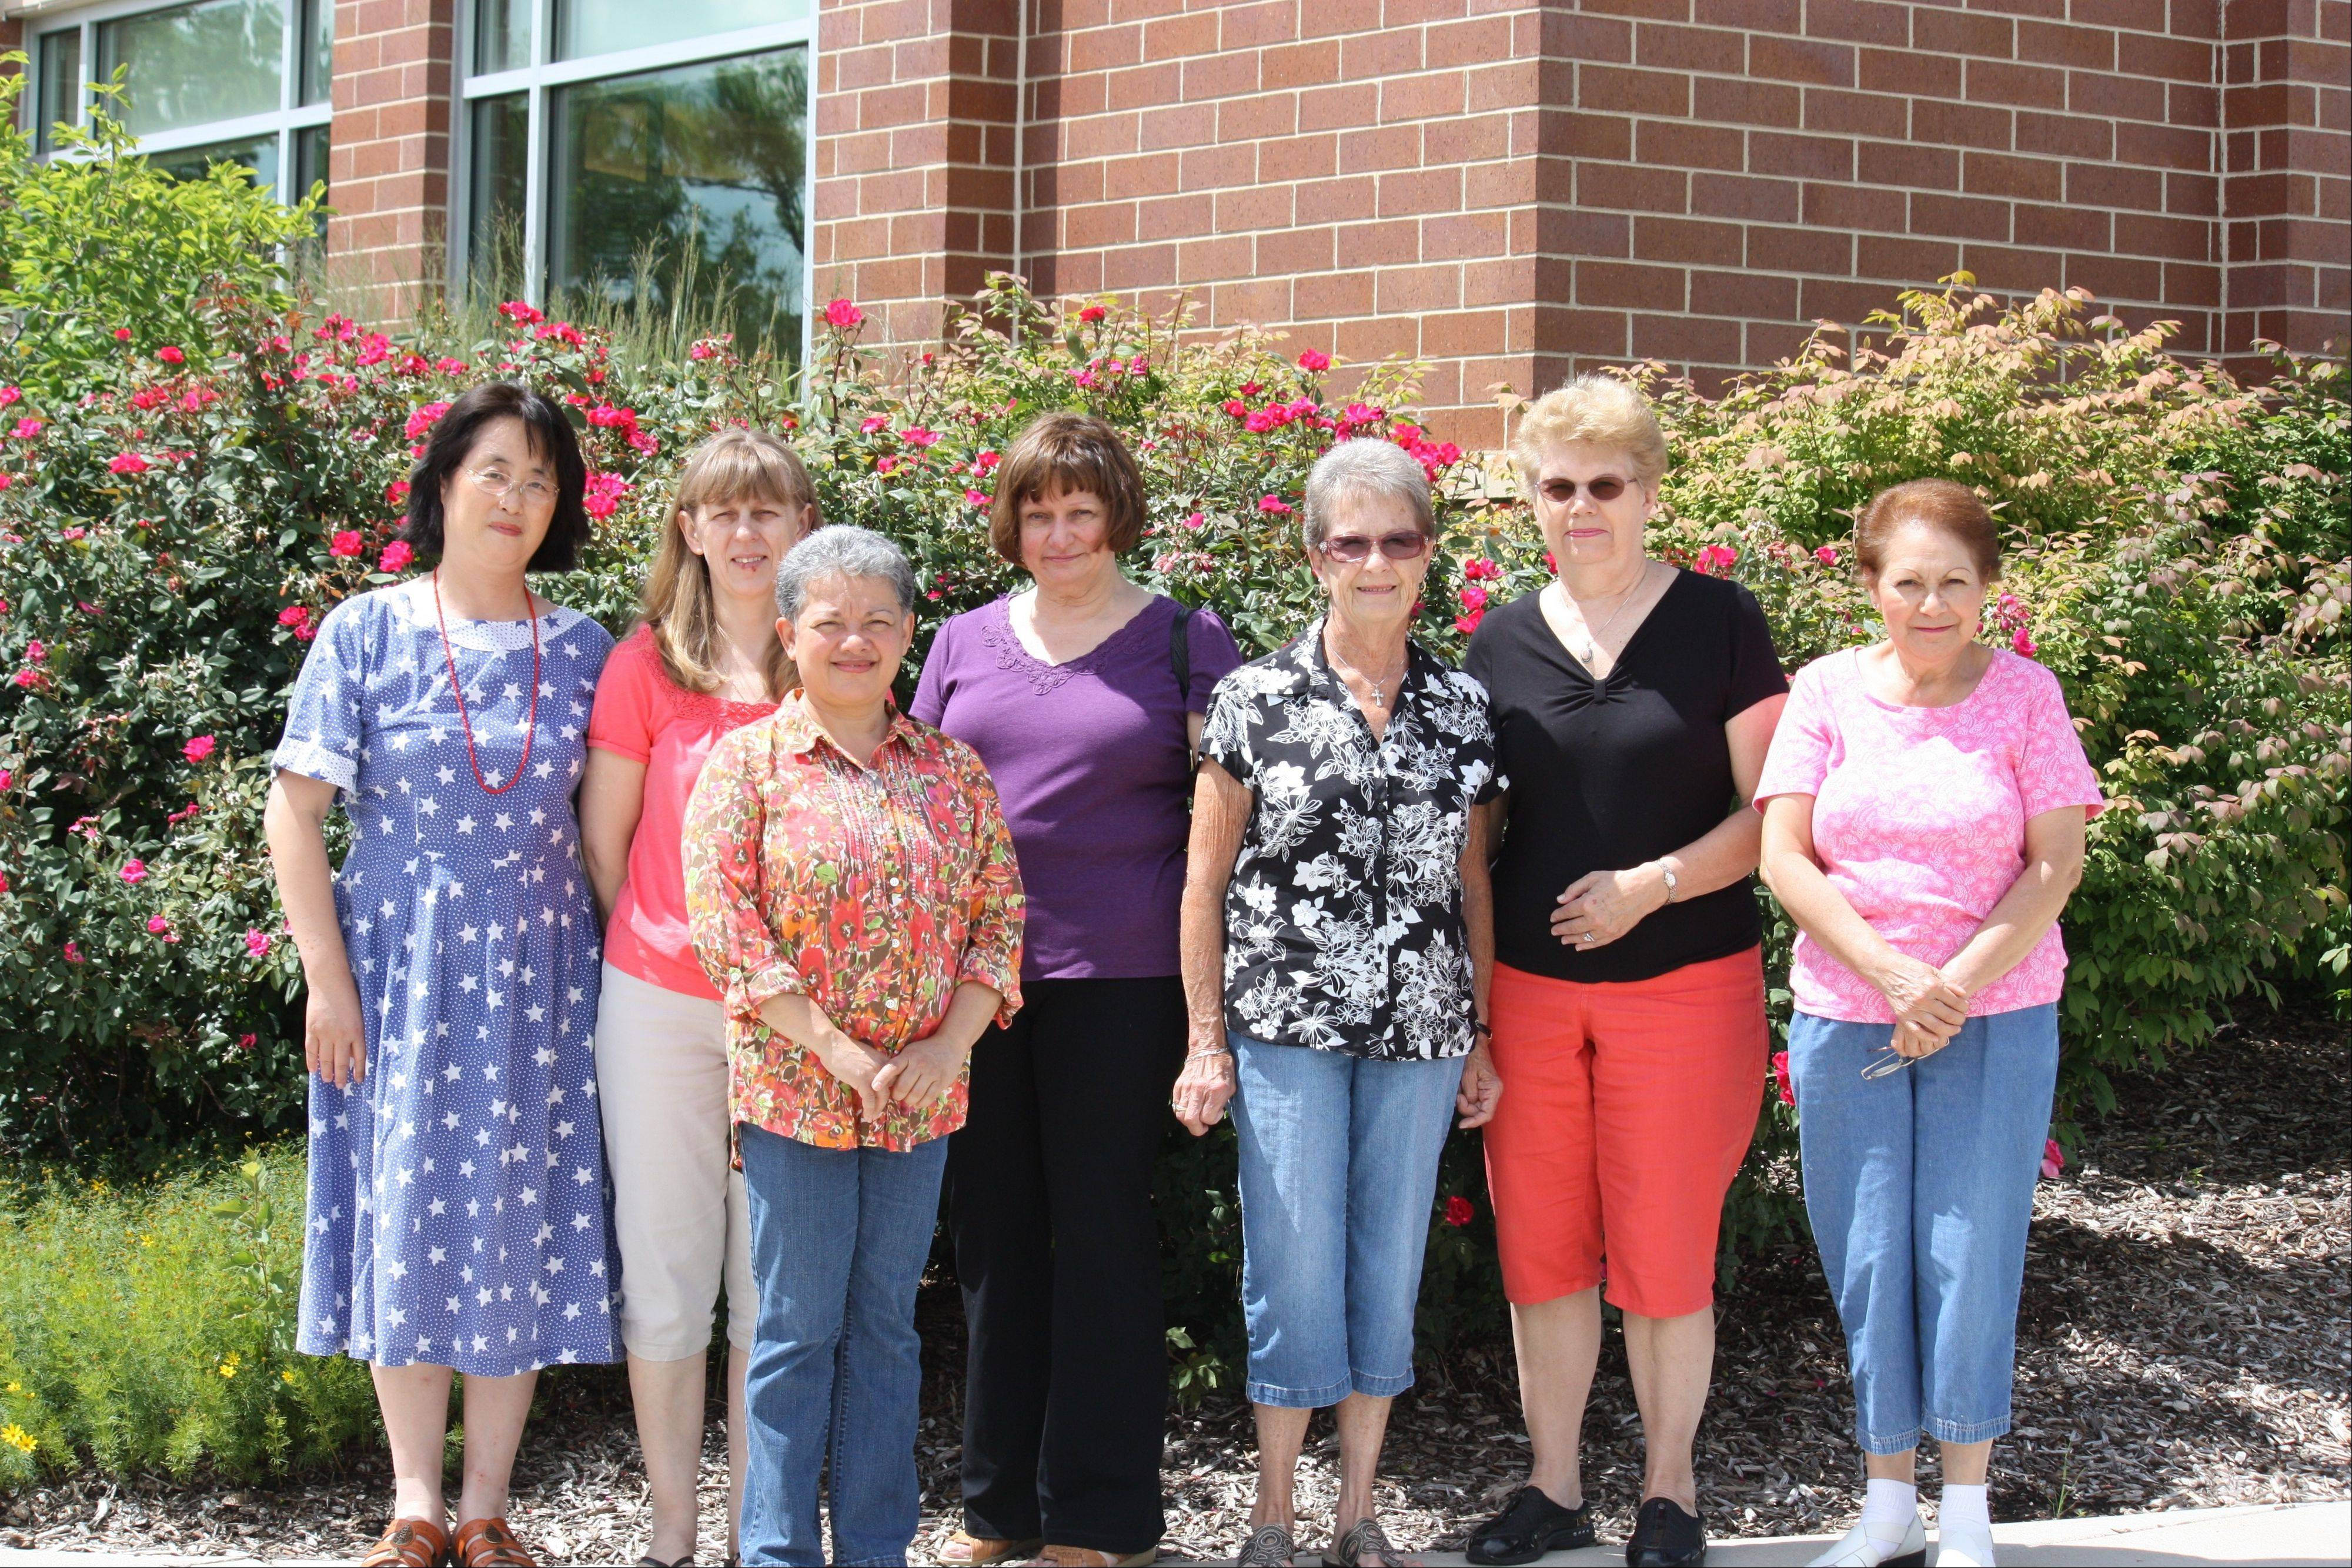 Members of the Quilting with Margaret group, from left, are: Renjie Chang, Margaret Luba, Enid Figueroa, Margaret Plank, Sandy Fehling, Judy Dzikonski and Blanca Villasenor.